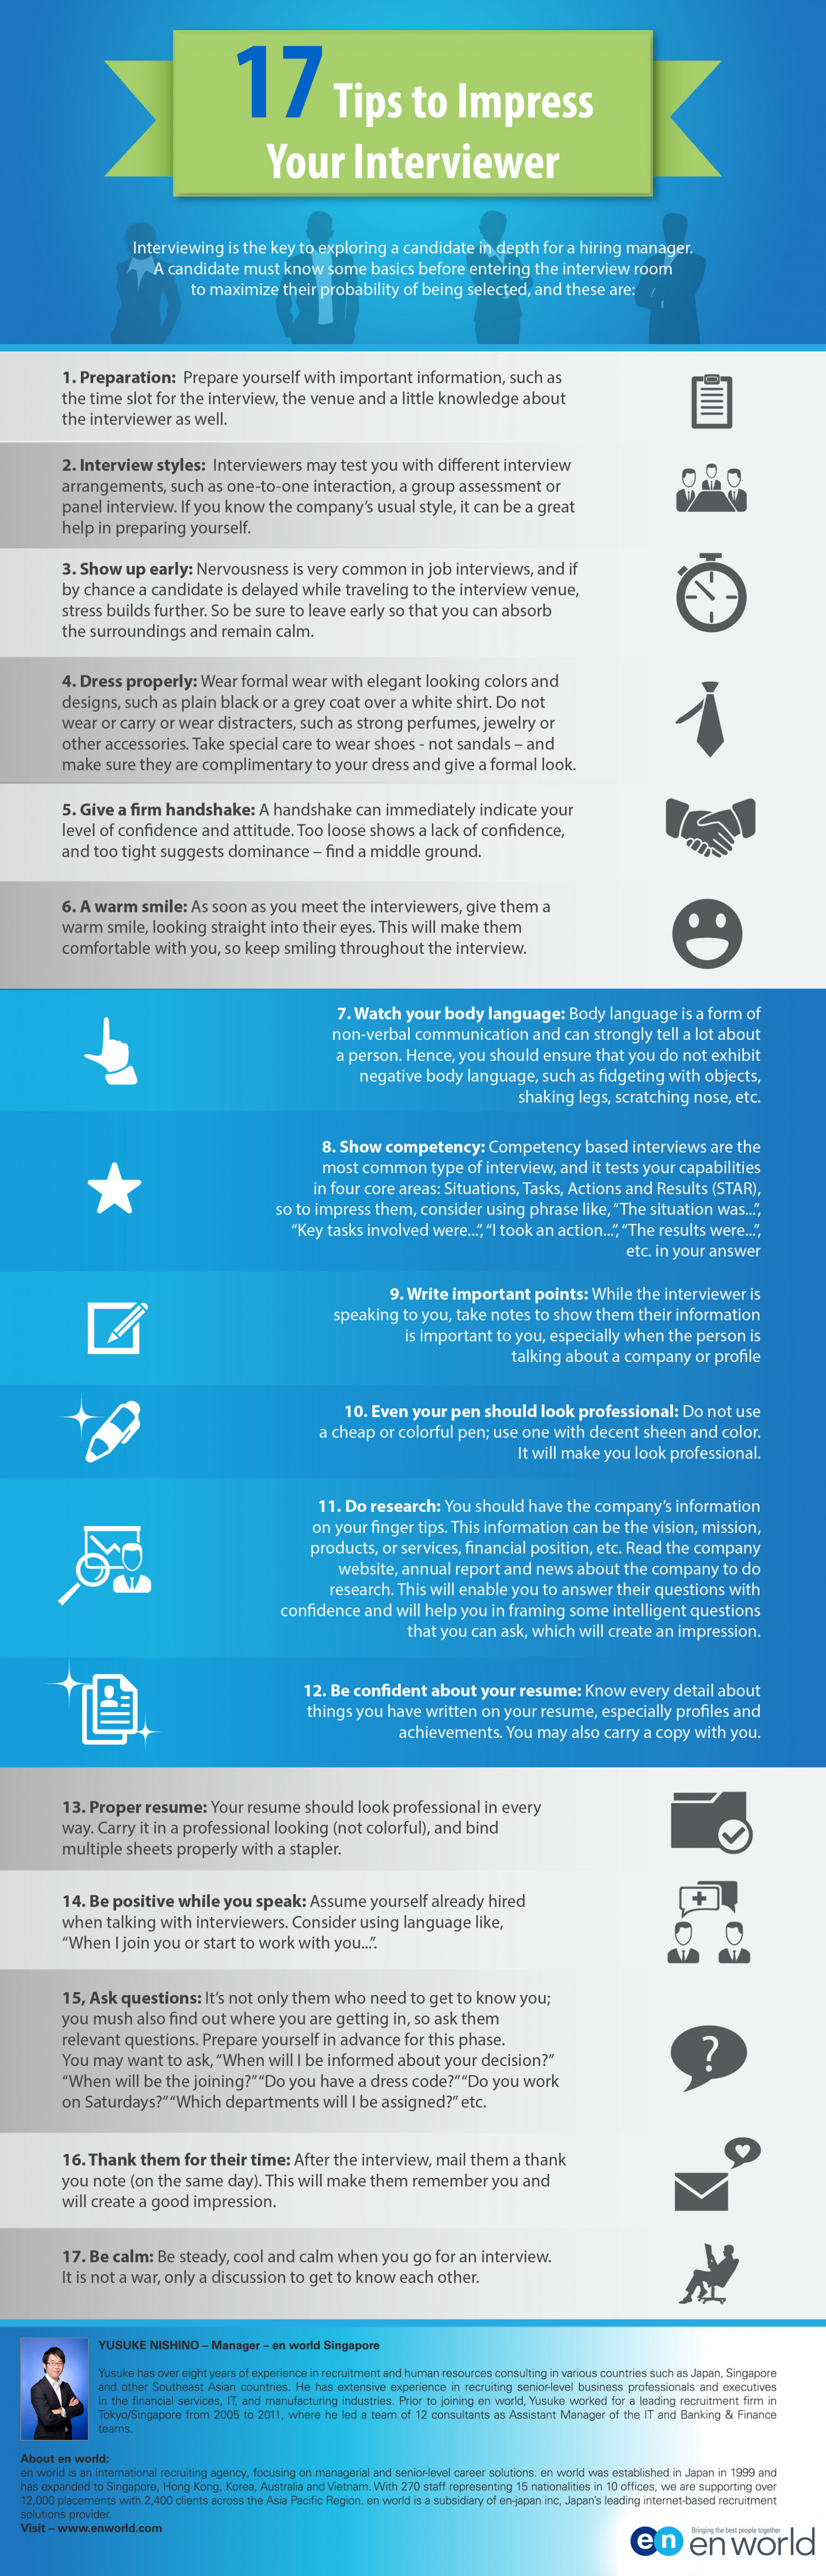 17 Tips to Impress Your Interviewer Infographic